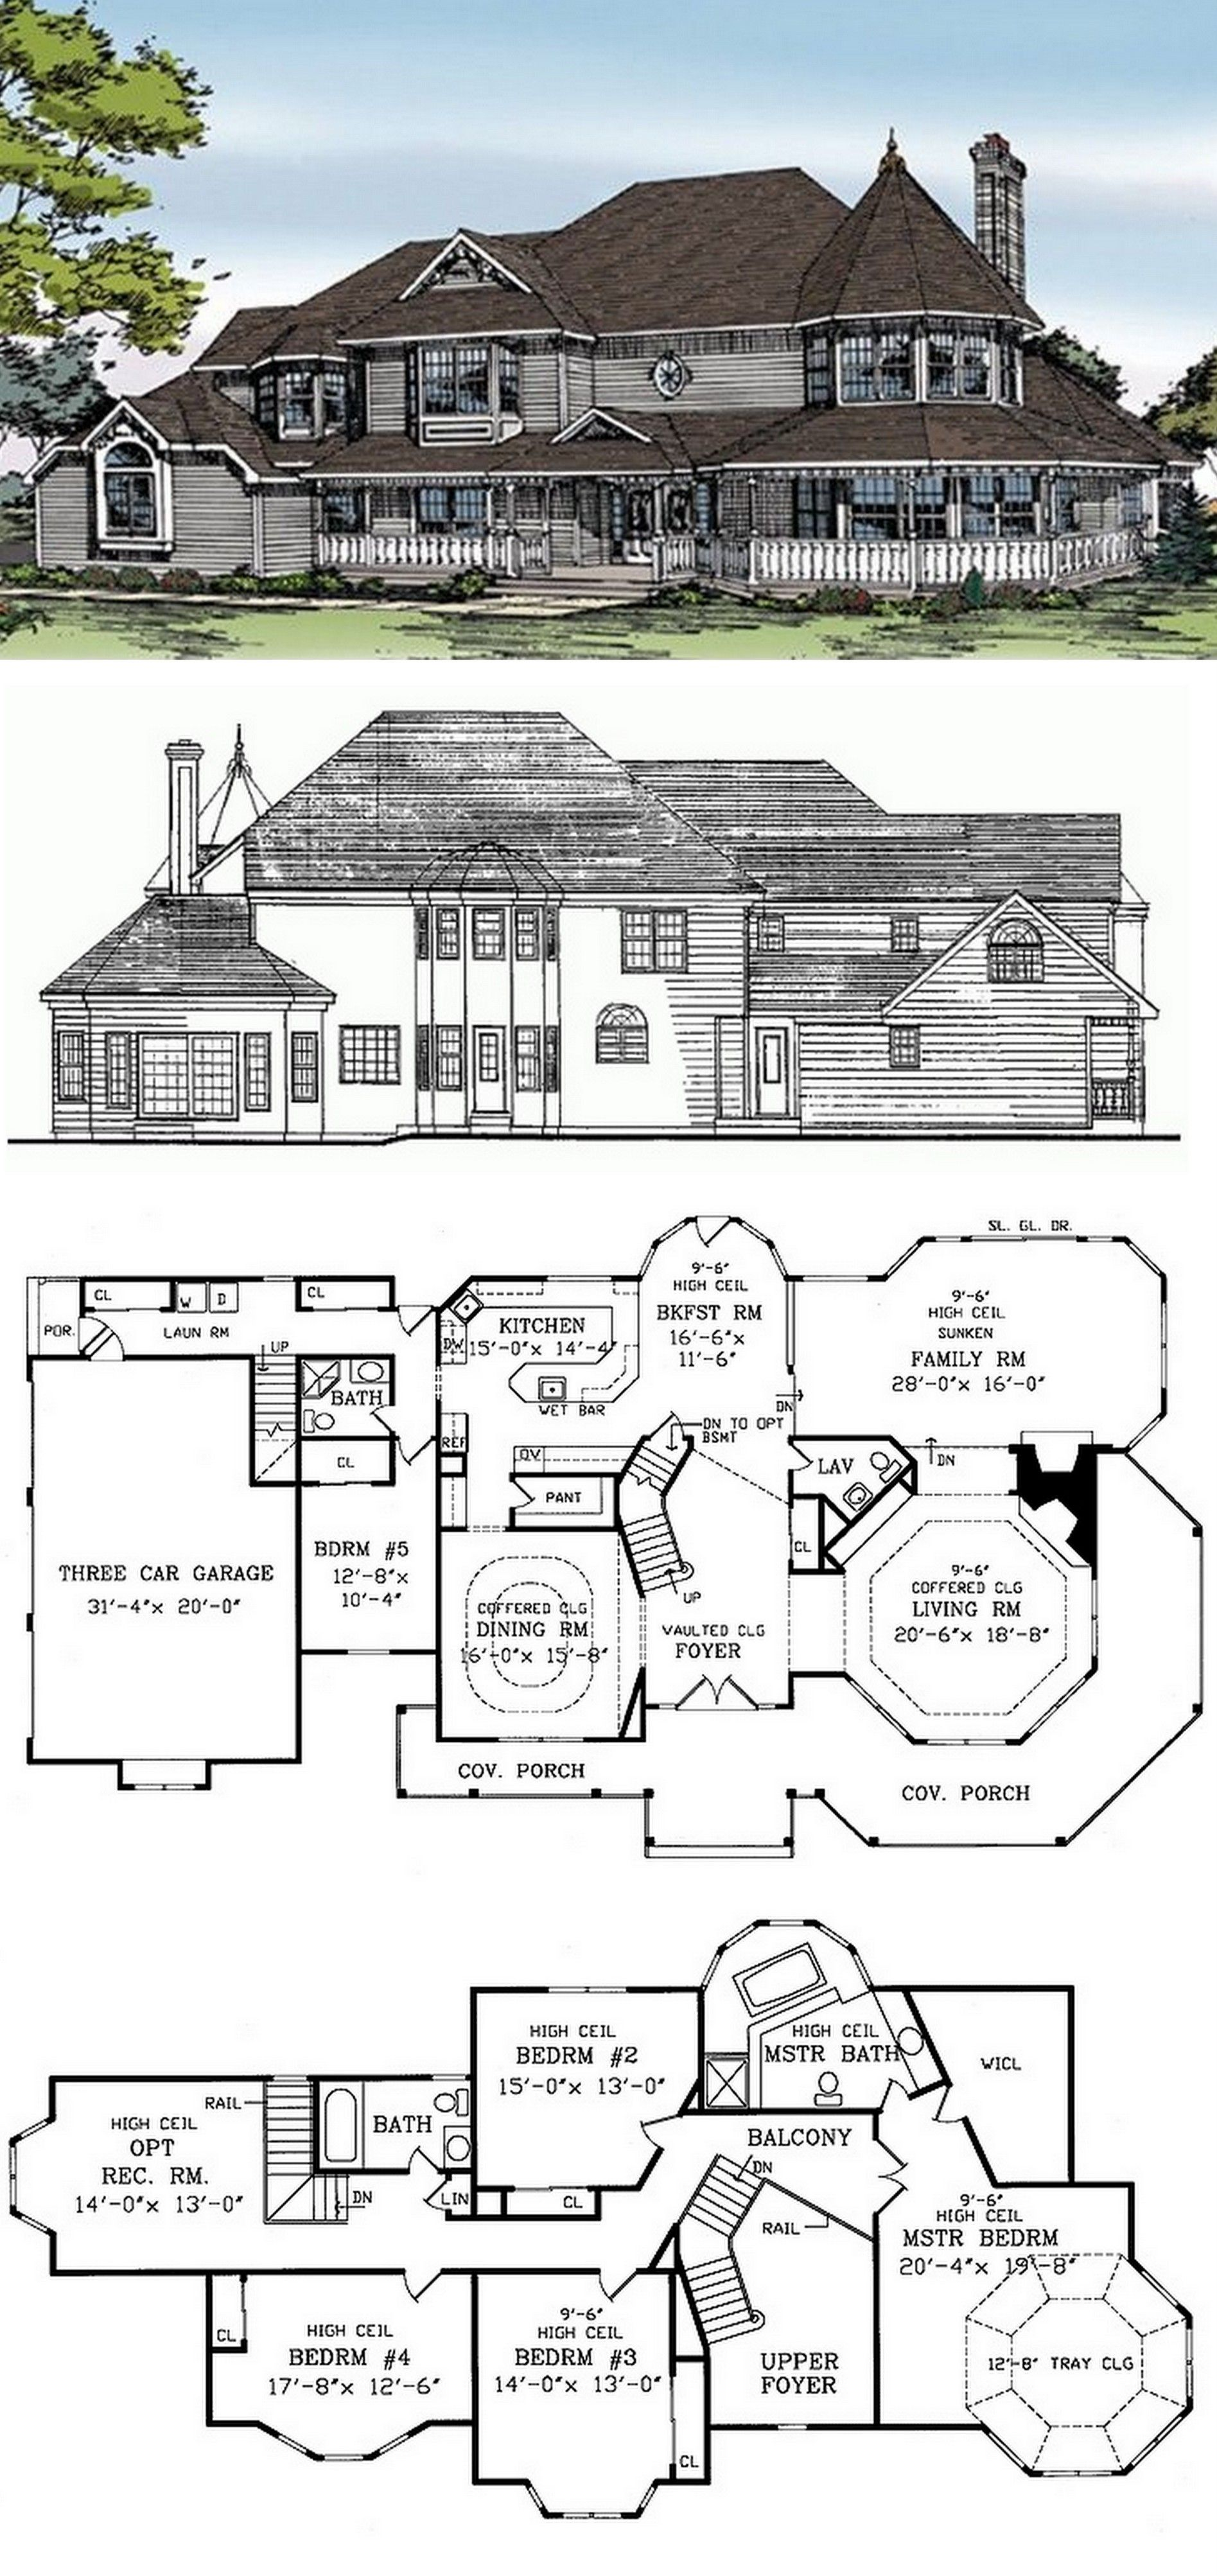 Victorian Style House Plan 5 Beds 3 5 Baths 4008 Sq Ft Plan 314 216 Victorian House Plans Basement House Plans Queen Anne House